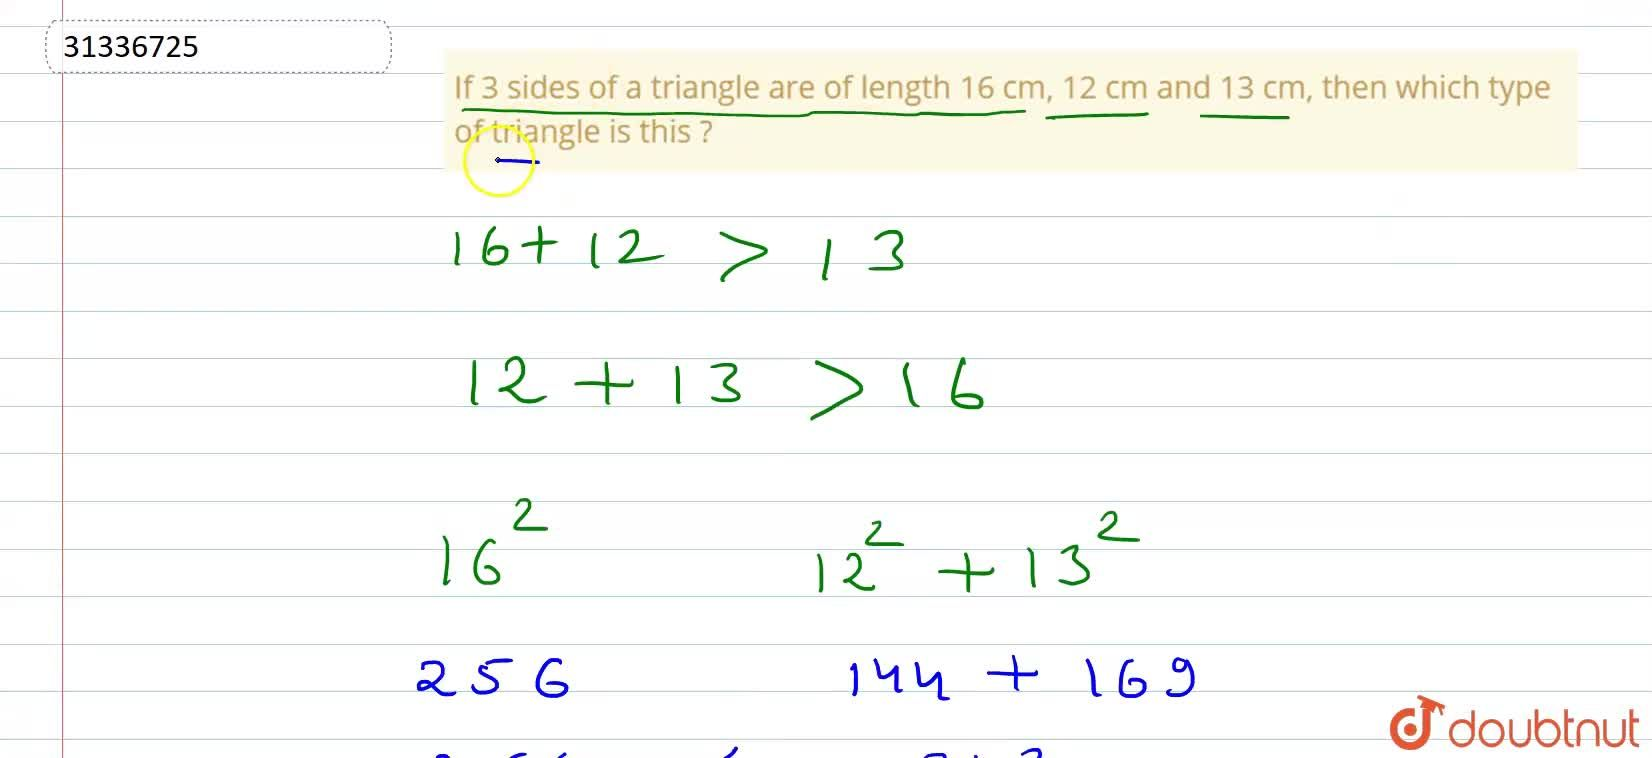 Solution for If 3 sides of a triangle are of length 16 cm, 12 c